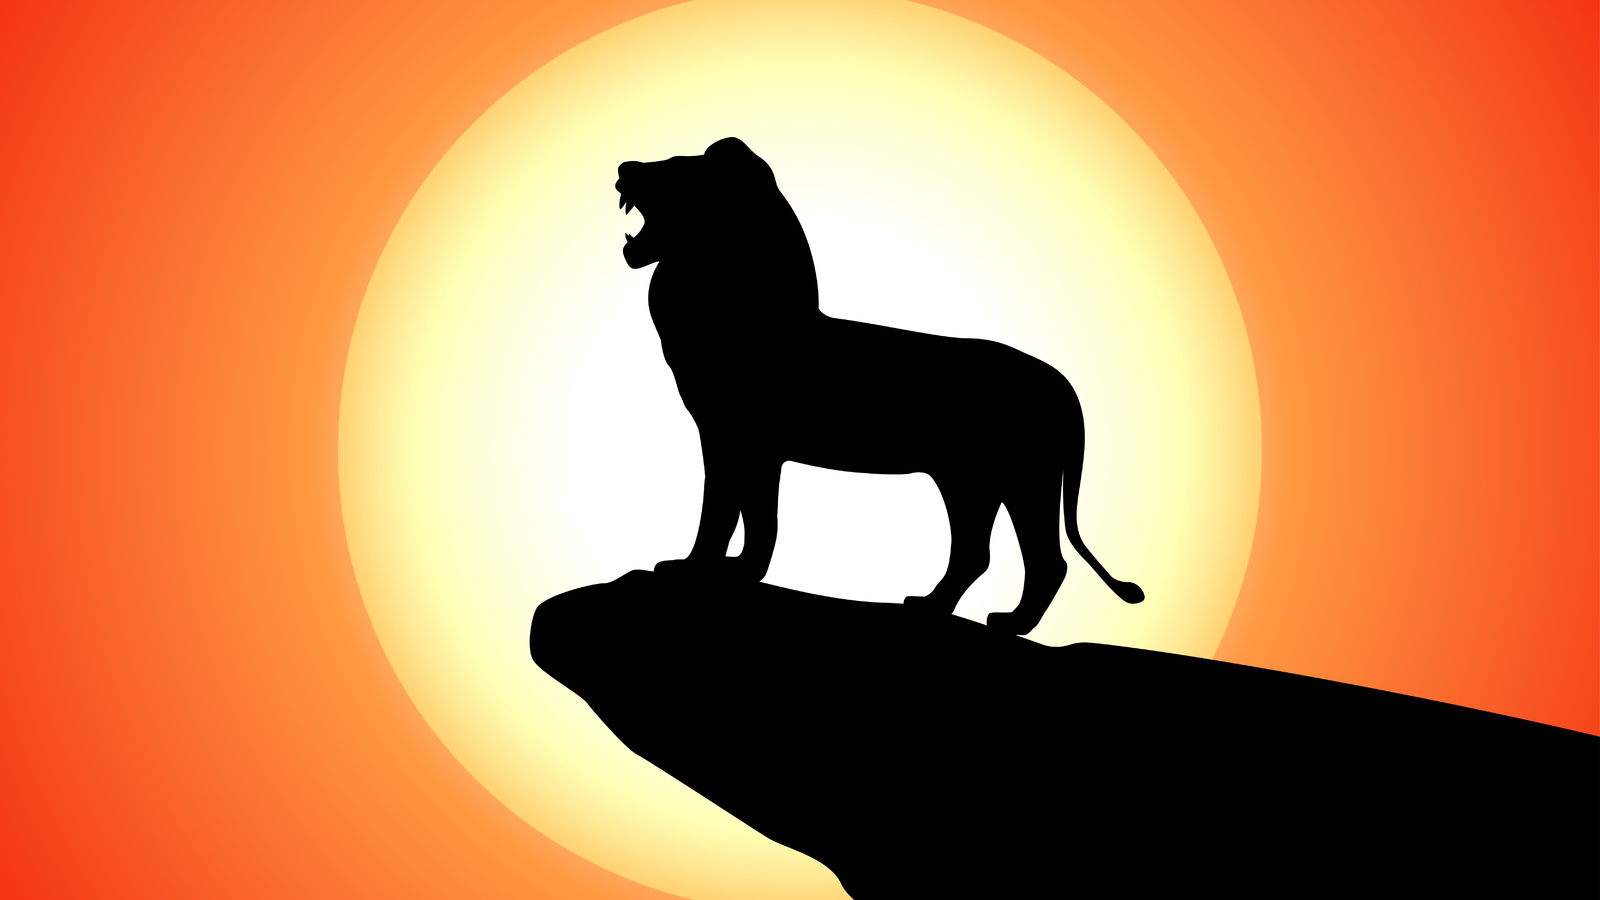 the-lion-king-by.jpg